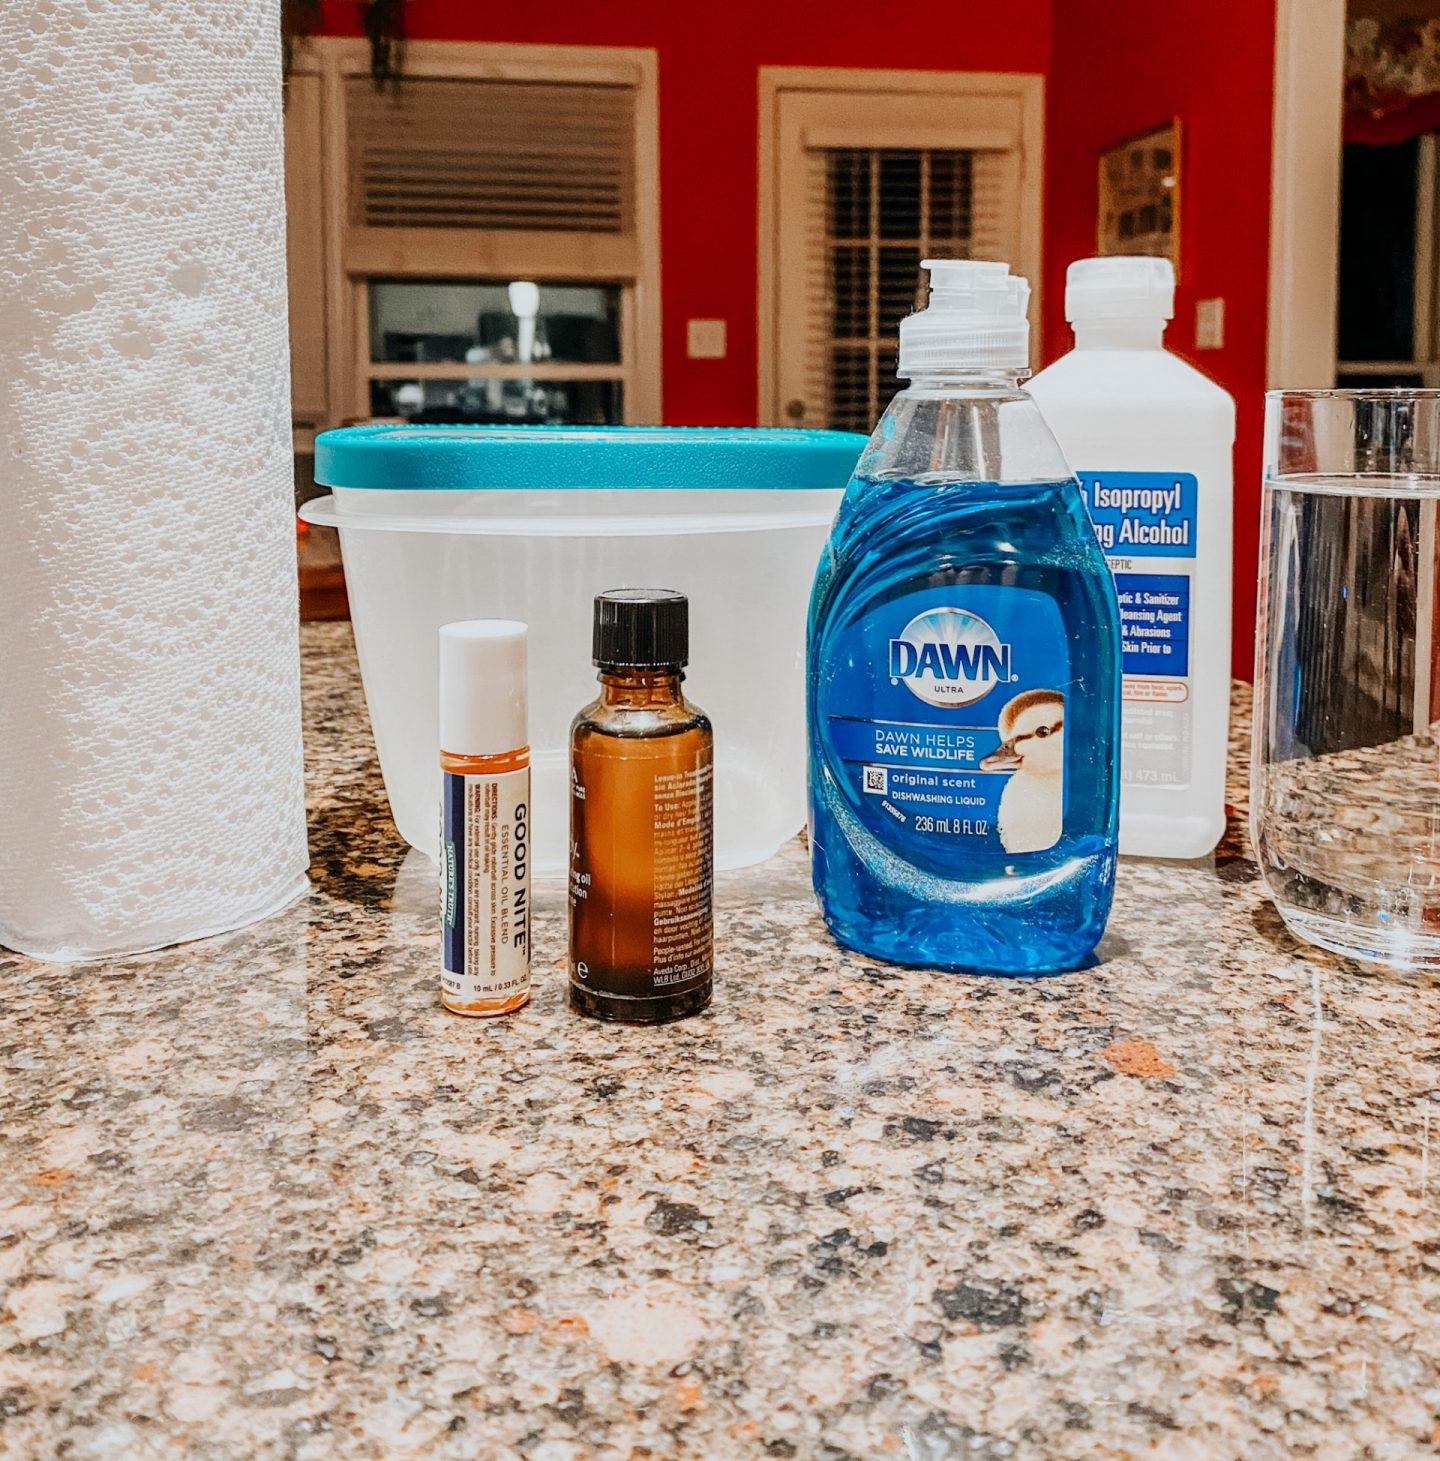 How To Make Homemade Antibacterial Wipes: A Quick Step By Step Tutorial by Alabama Life + Style Blogger, Heather Brown // My Life Well Loved